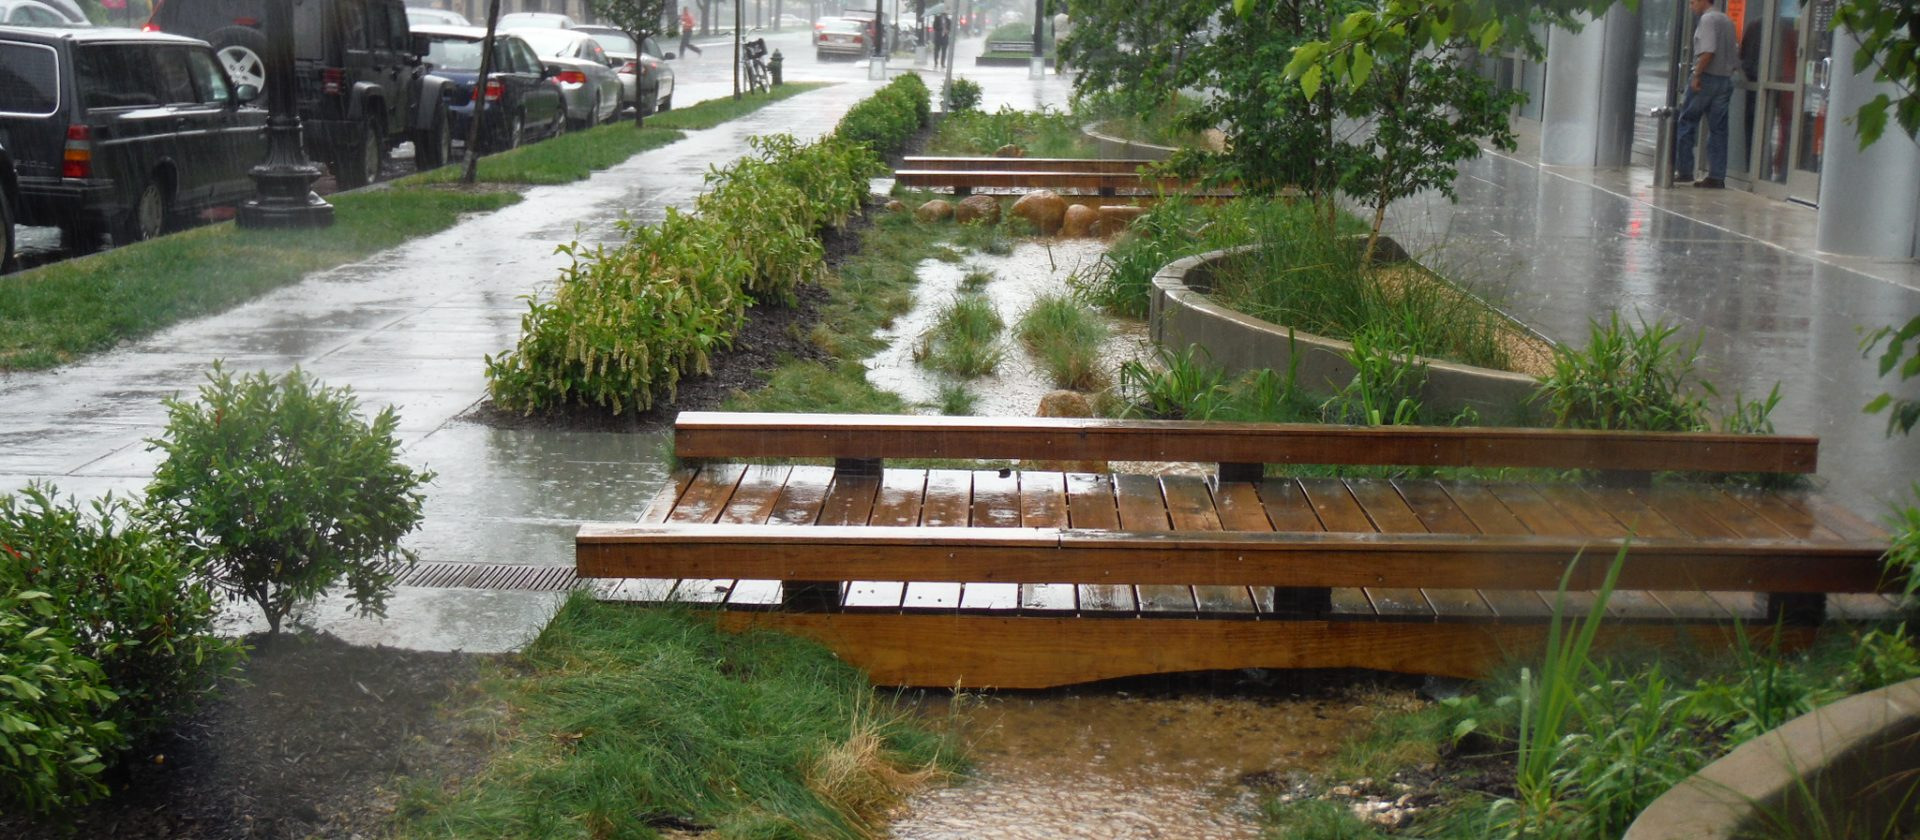 [Webcast] PAHs in Stormwater